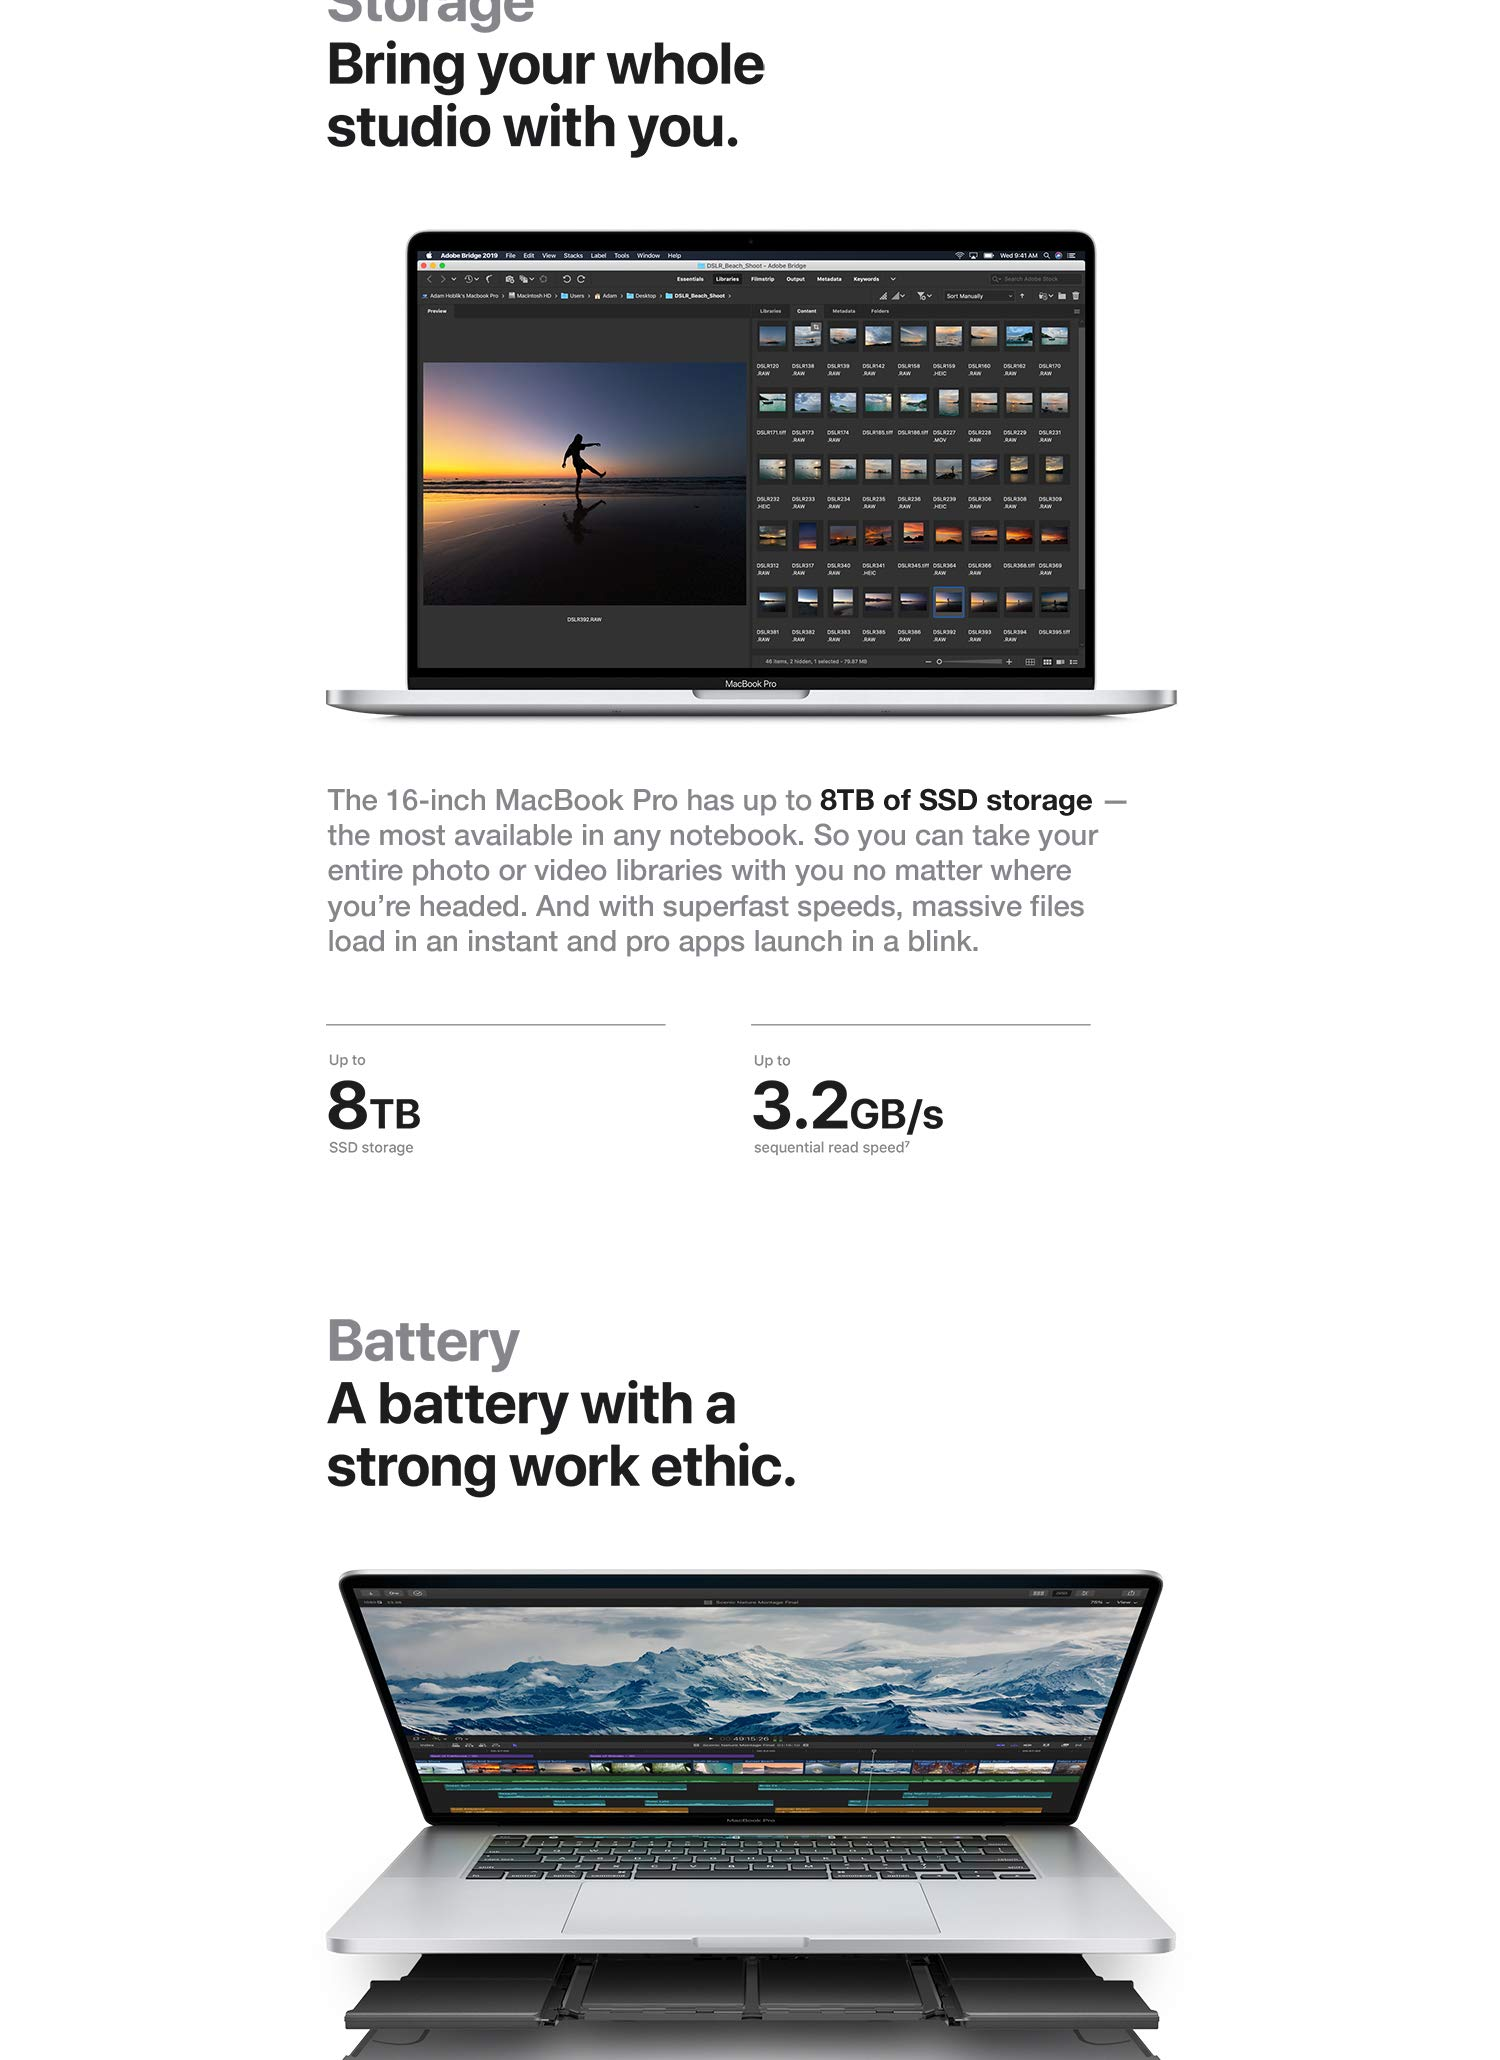 The 16-inch MacBook Pro has up to 8TB of SSD storage - the most available in any notebook.